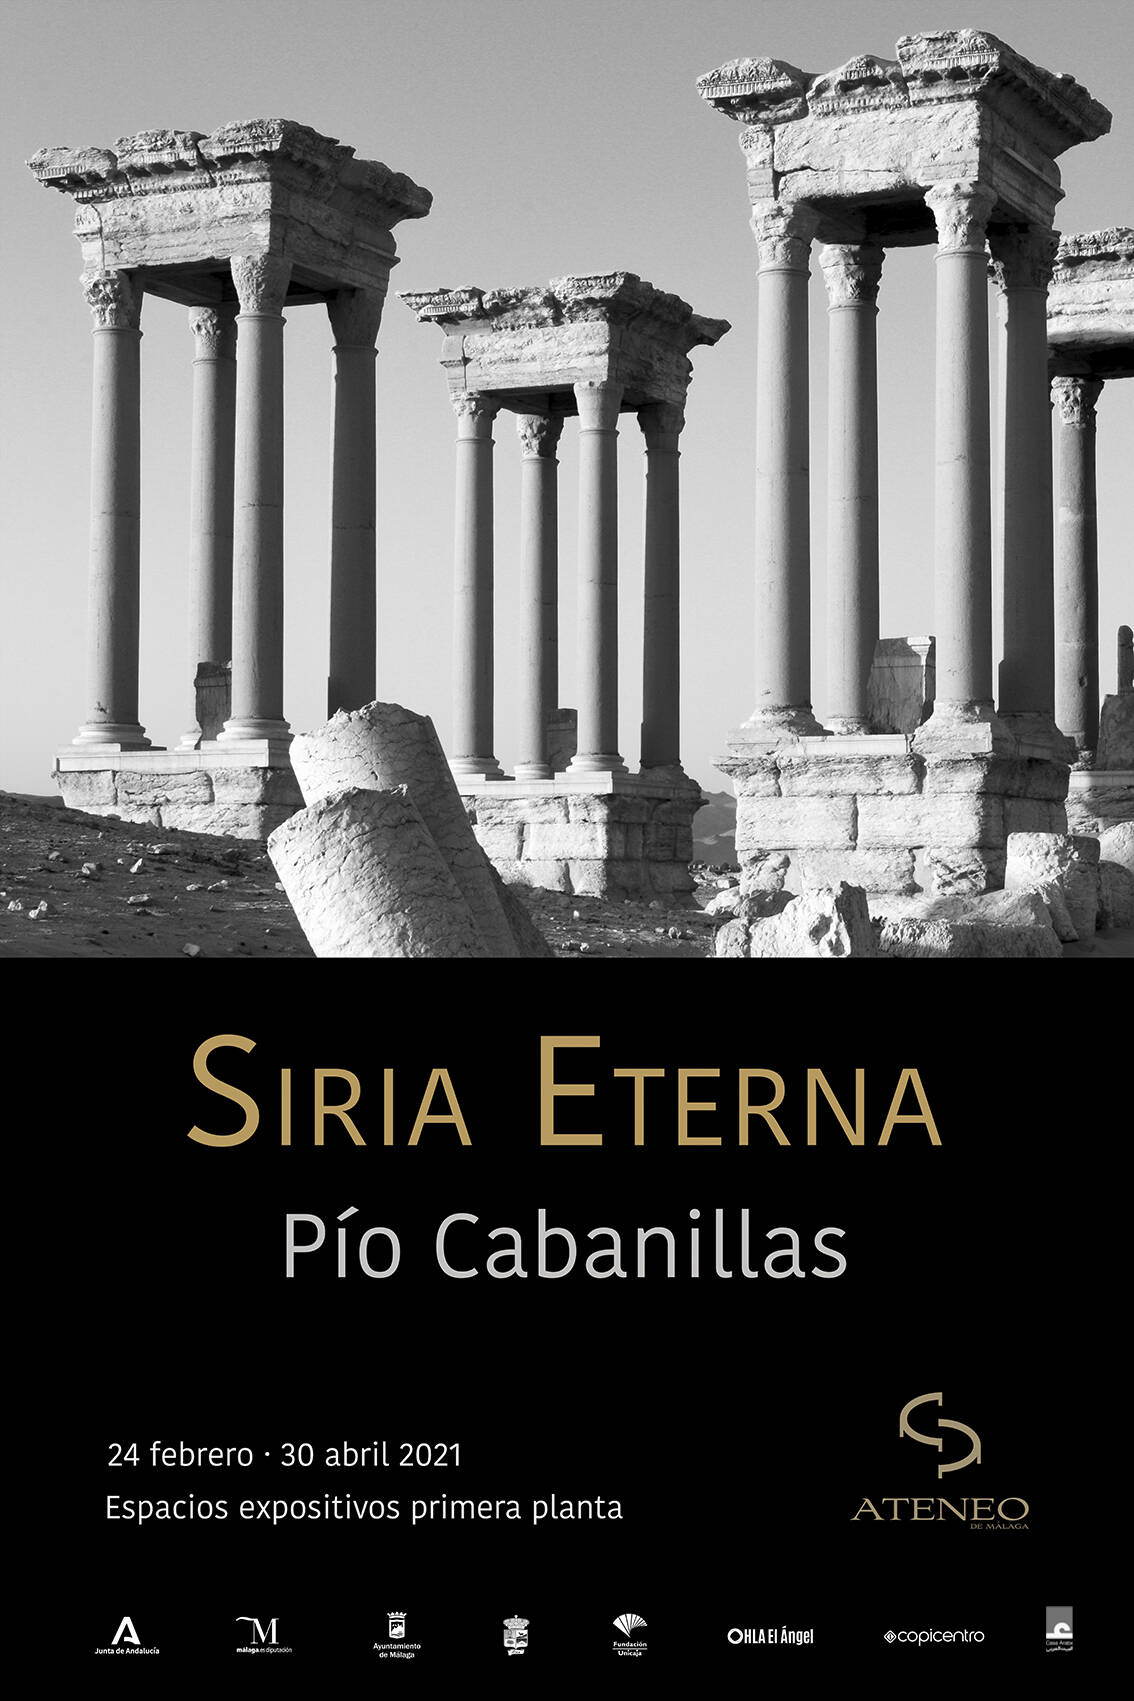 Opening of the exhibition SIRIA ETERNA, by Pío Cabanillas